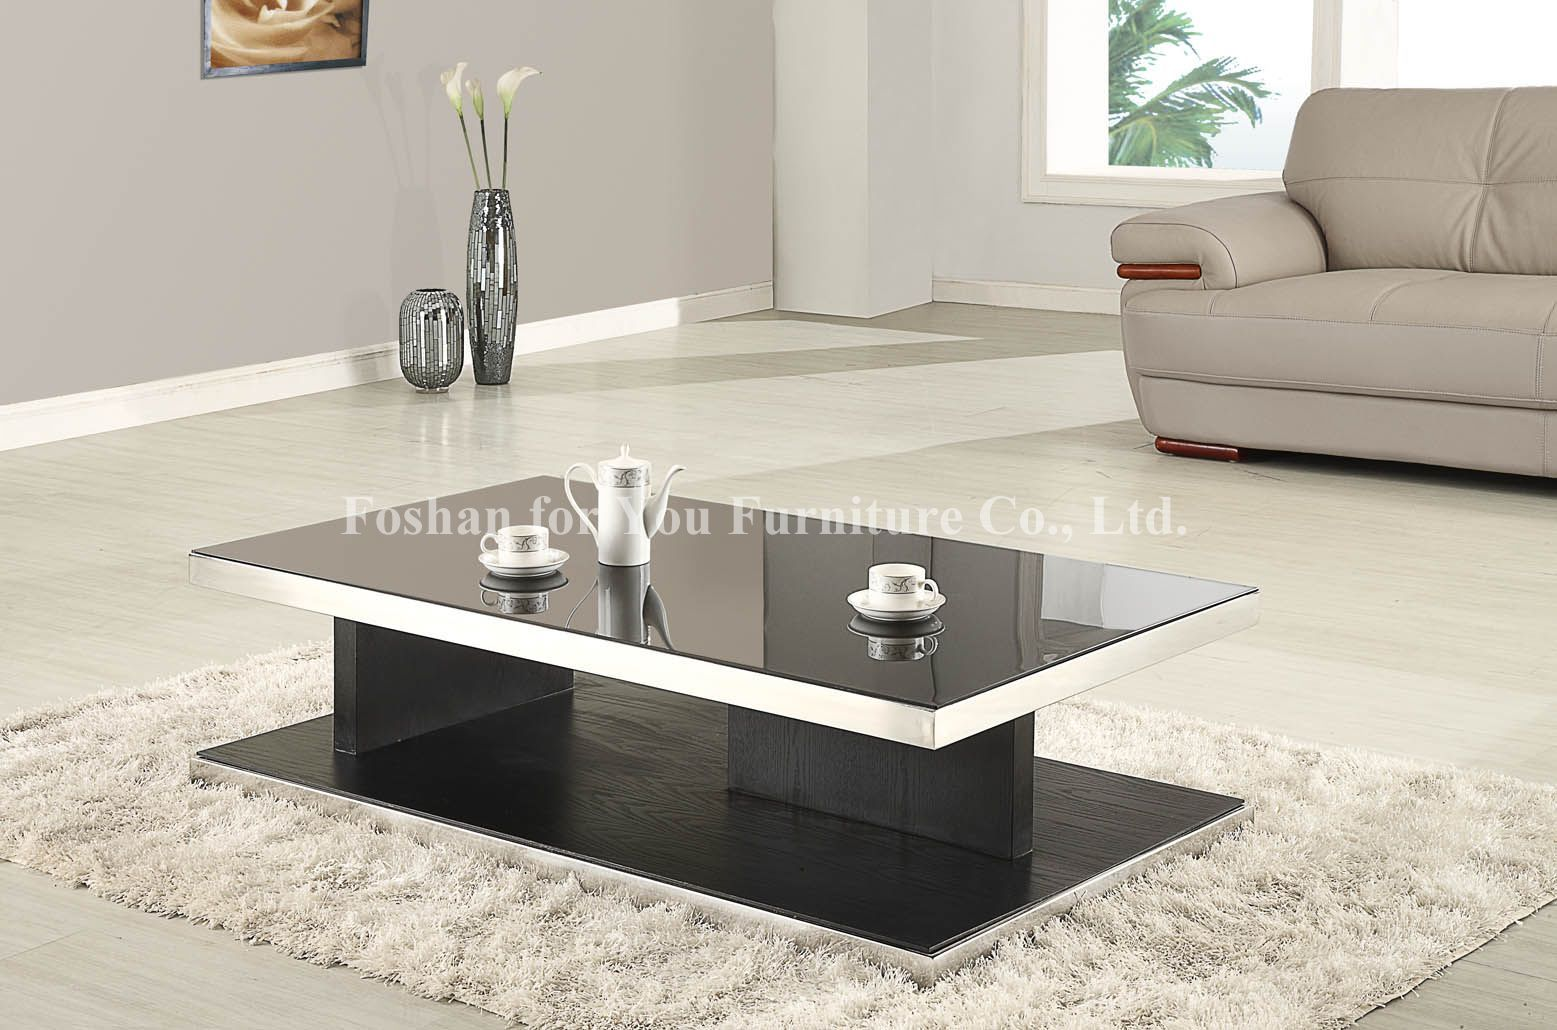 20 Modern Living Room Table Magzhouse, Centre Tables For Living Rooms